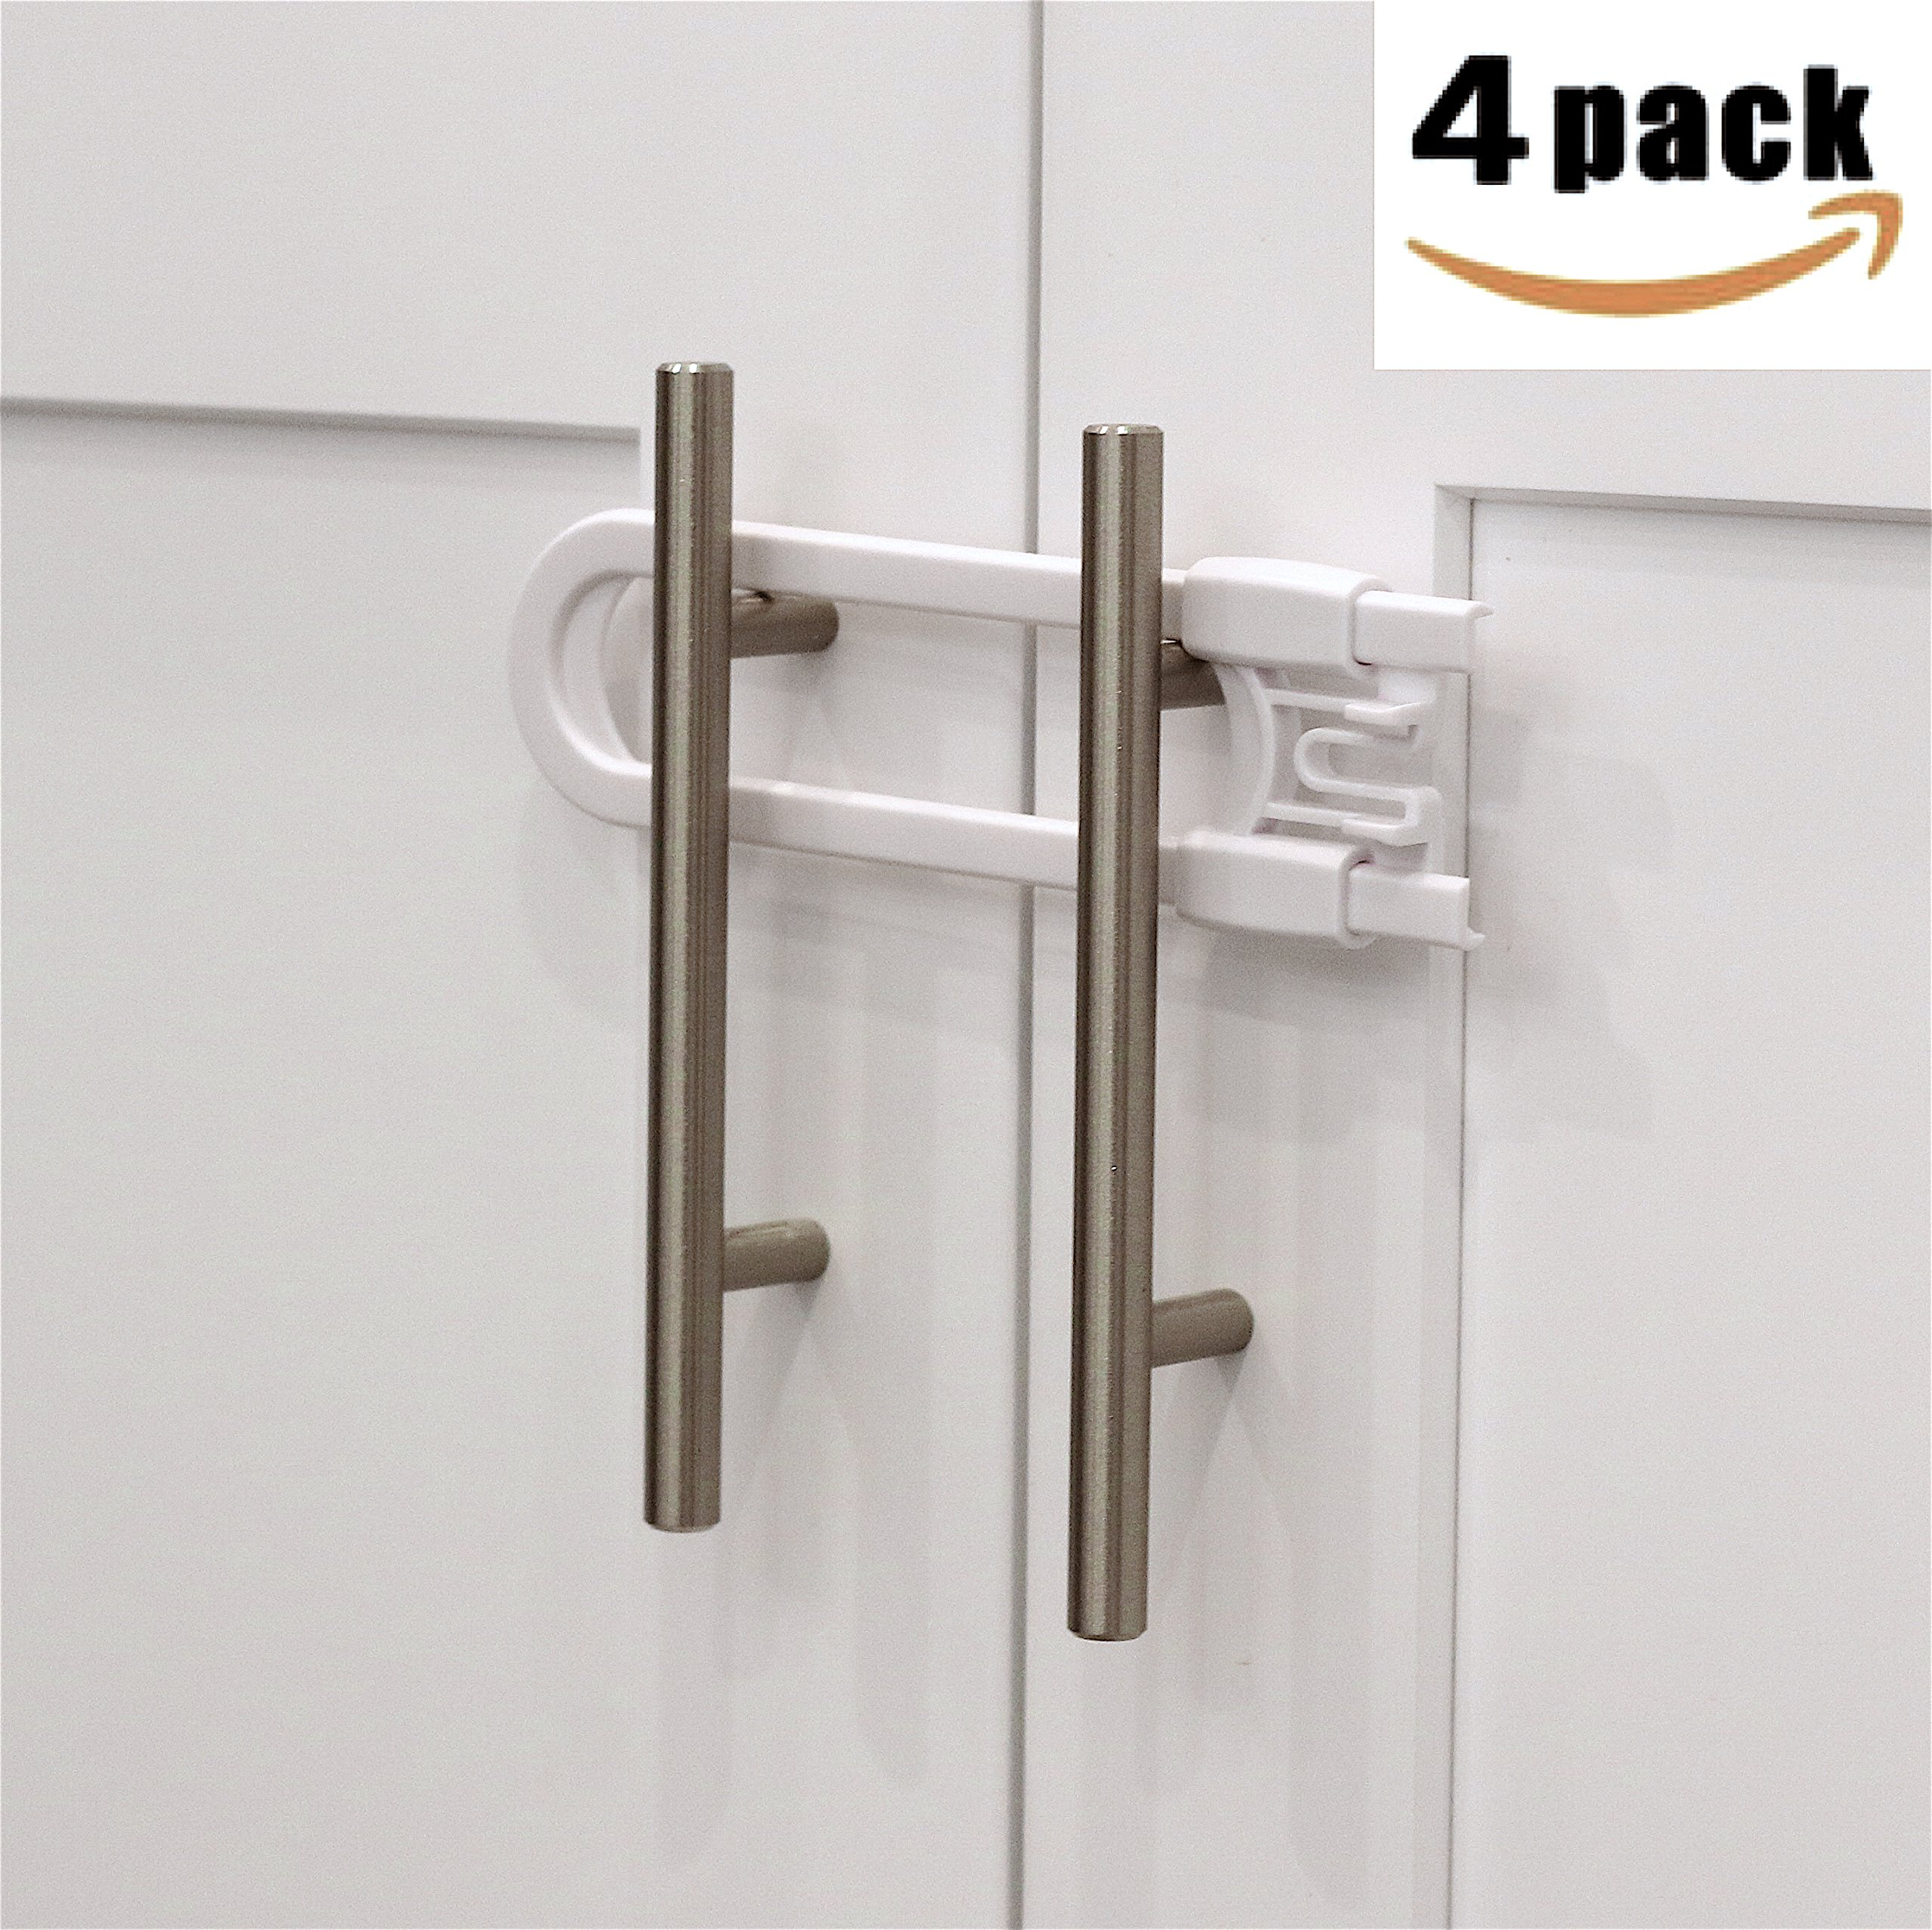 upward cute latches interior closer cabinets kitchen pcs doors design door proportions downward closers cabinet soft kitchenregarding x cupboard for and